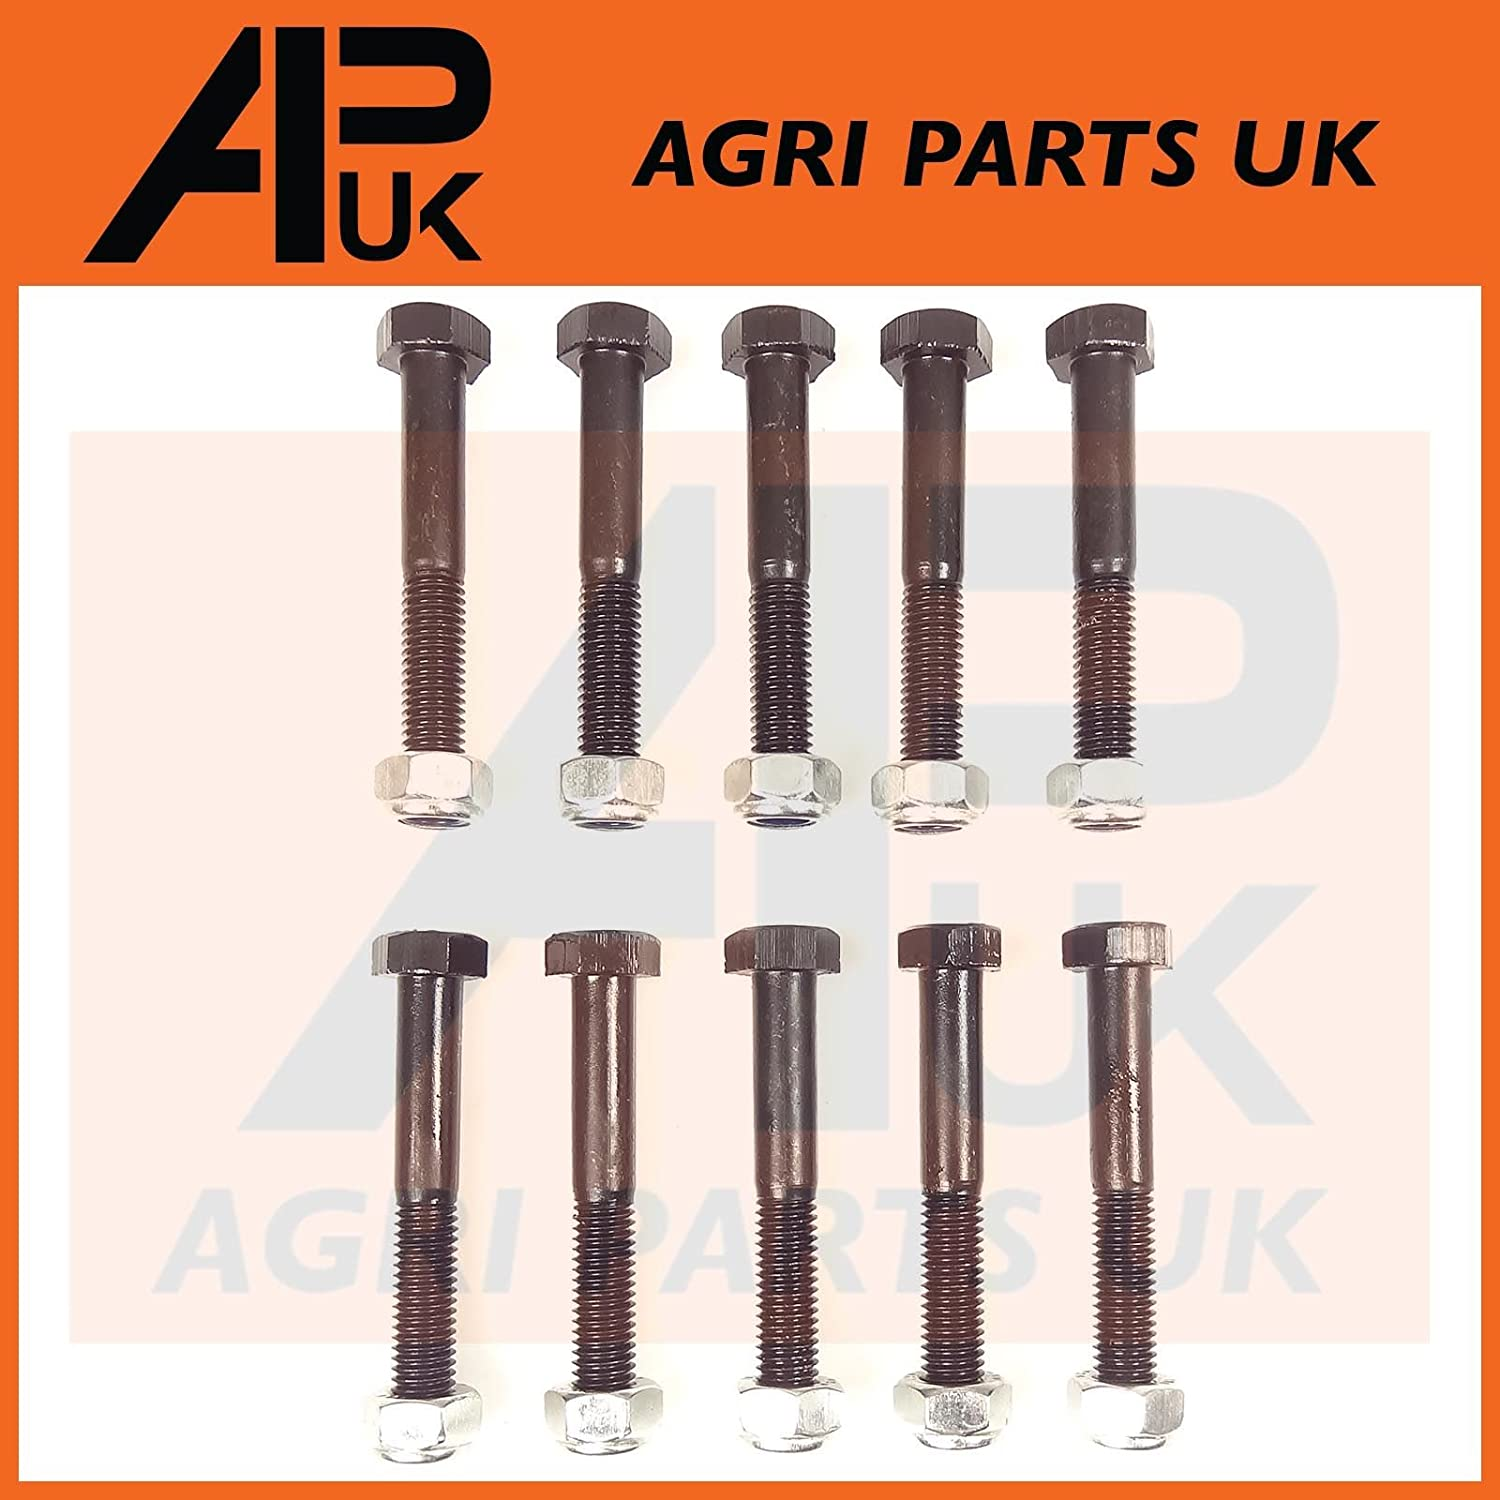 APUK 10 Pack PTO Shear Bolts M8 x 55mm Lely Welger Baler Mower Blower Feeder Topper Agri Parts UK Ltd